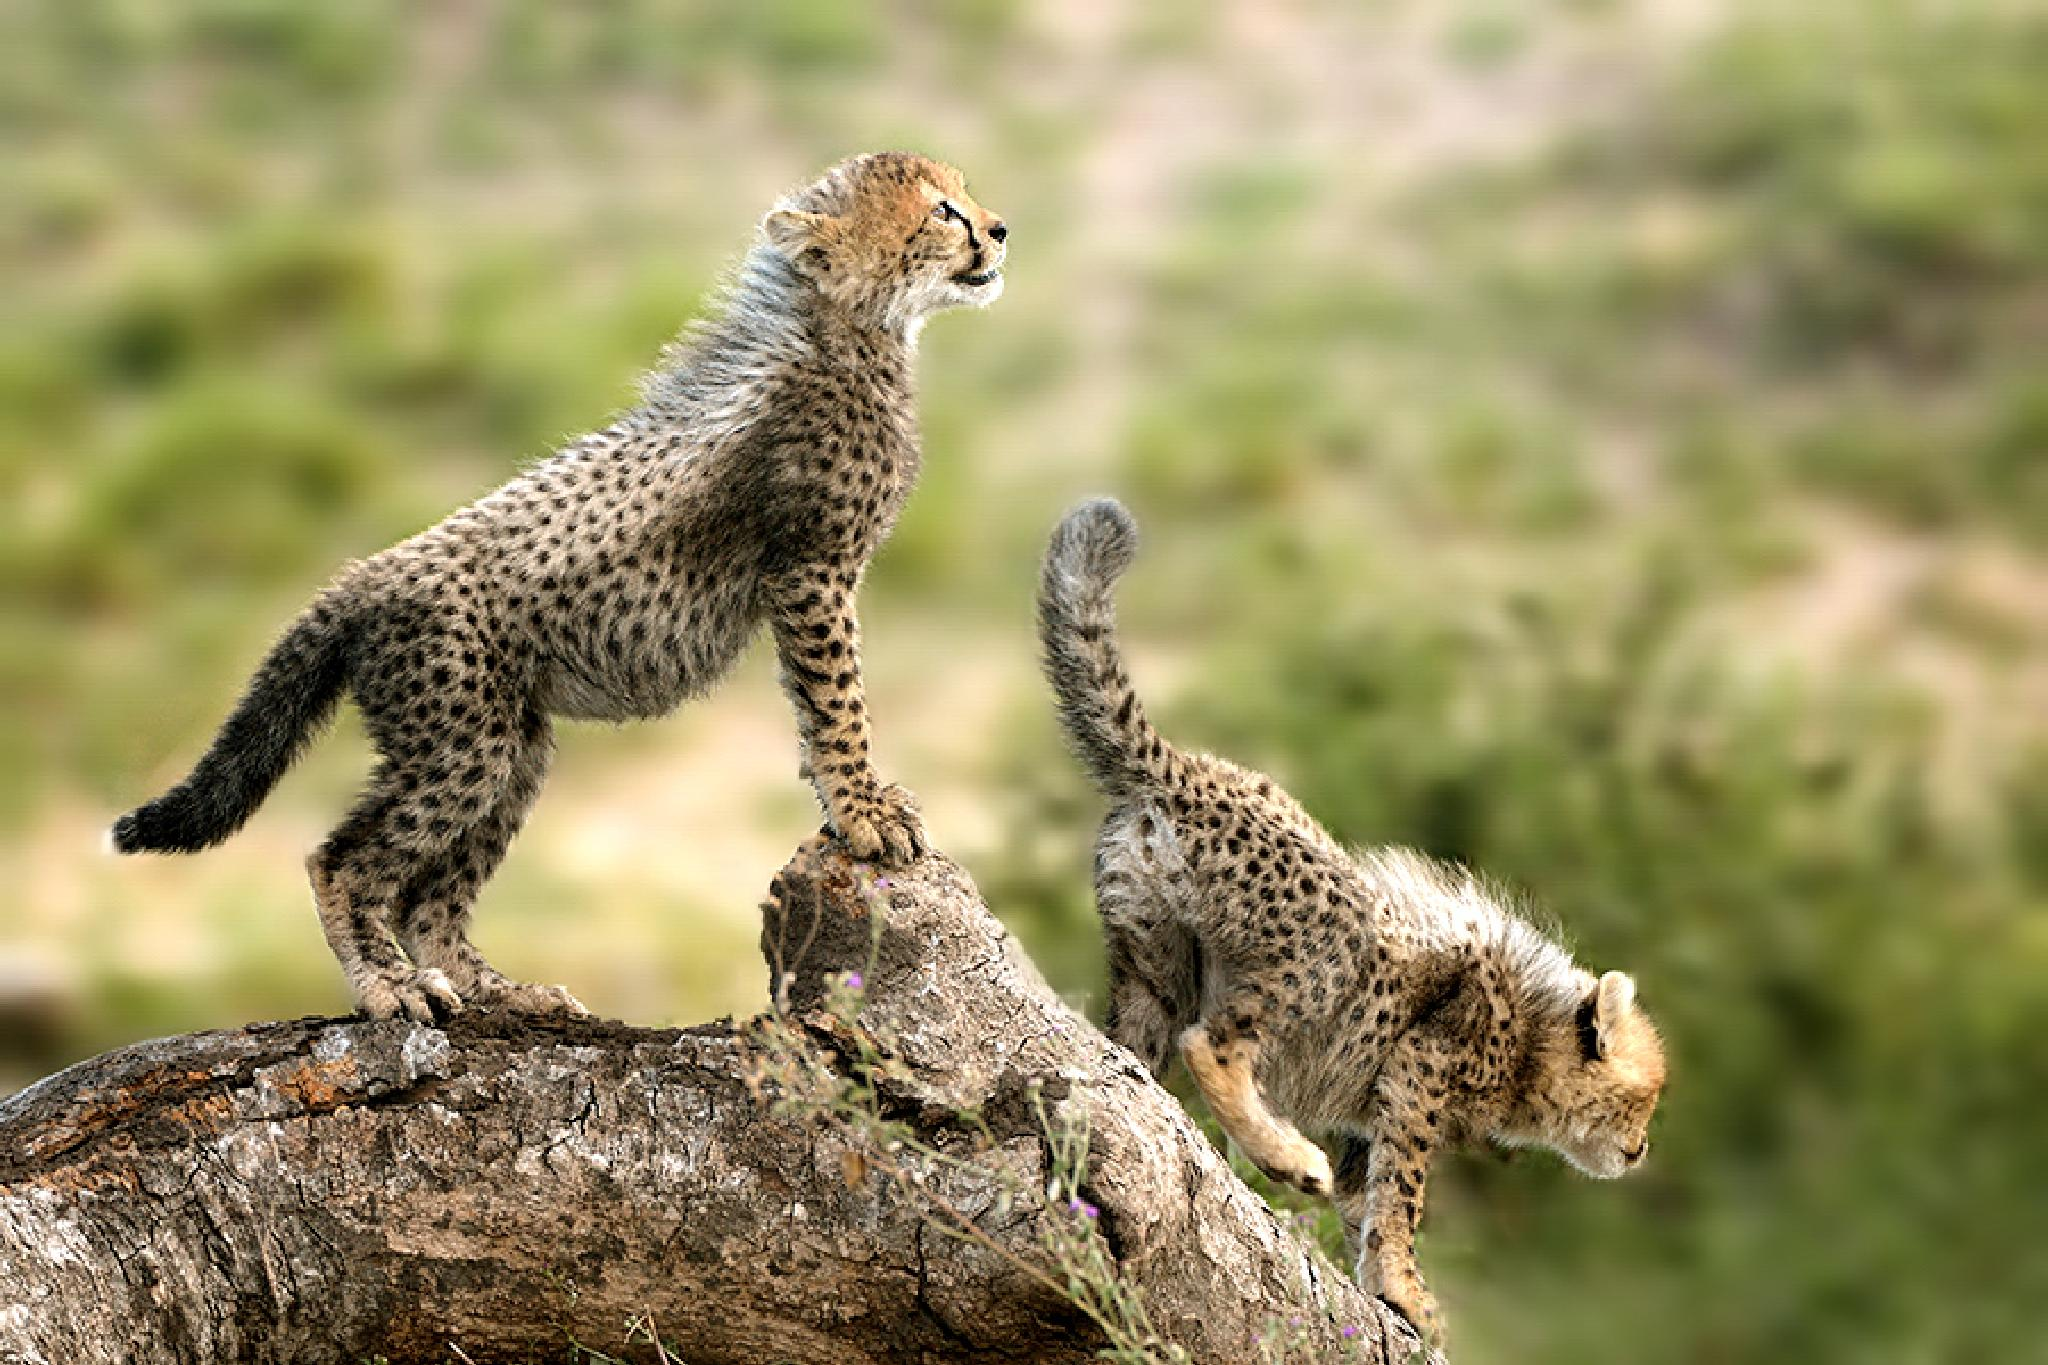 Kenya - cheetah by Pascale Froment